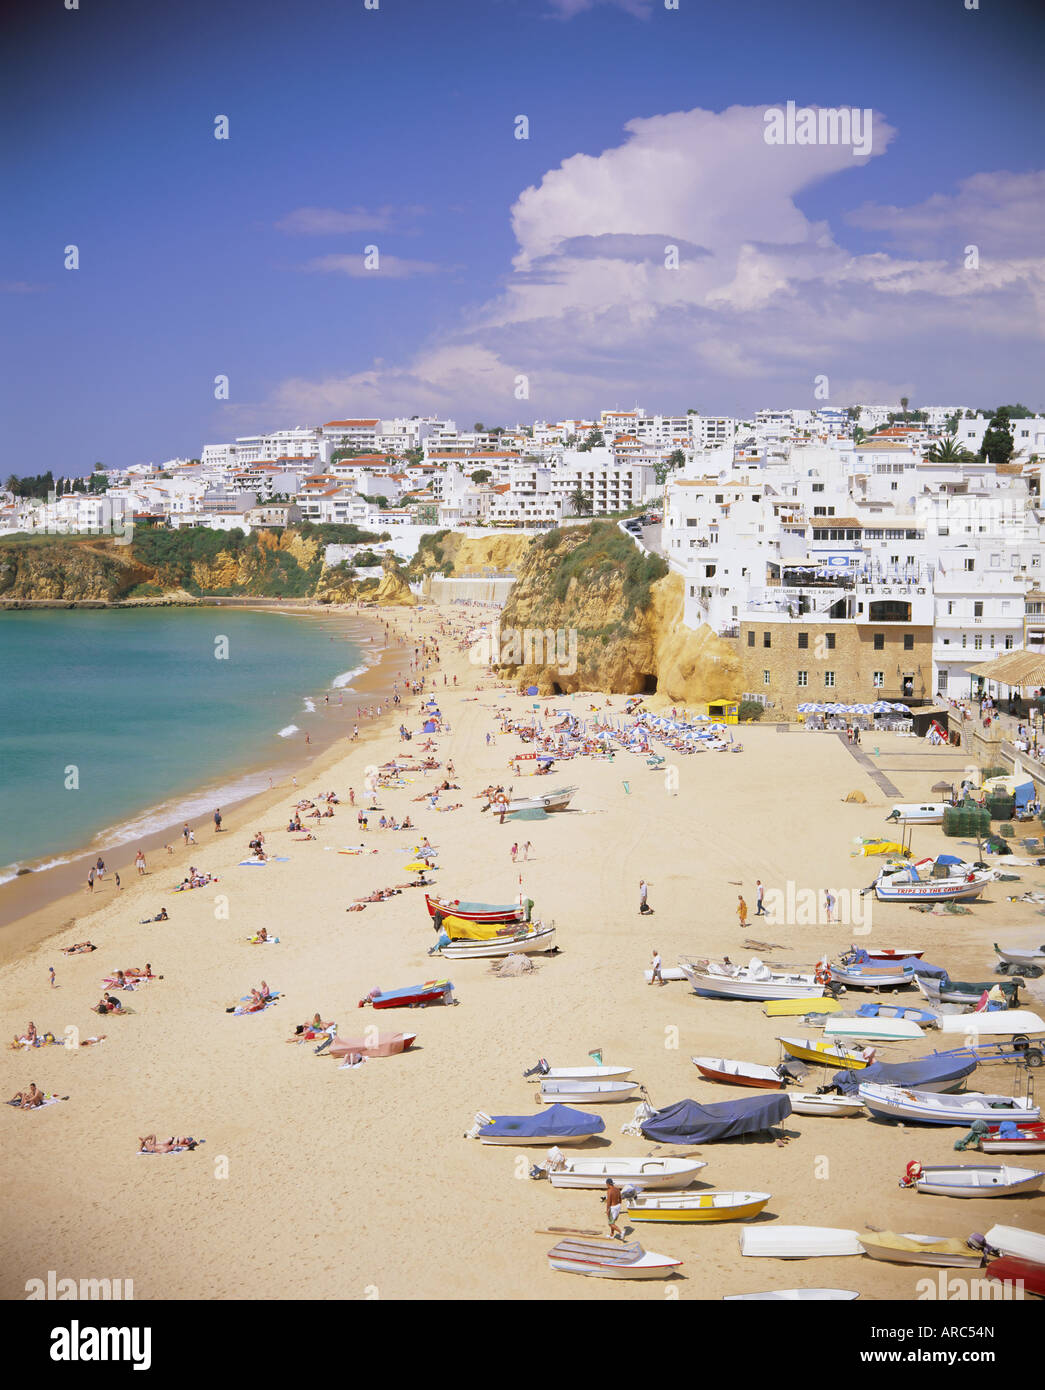 Beach and town, Albufeira, Algarve, Portugal, Europe - Stock Image